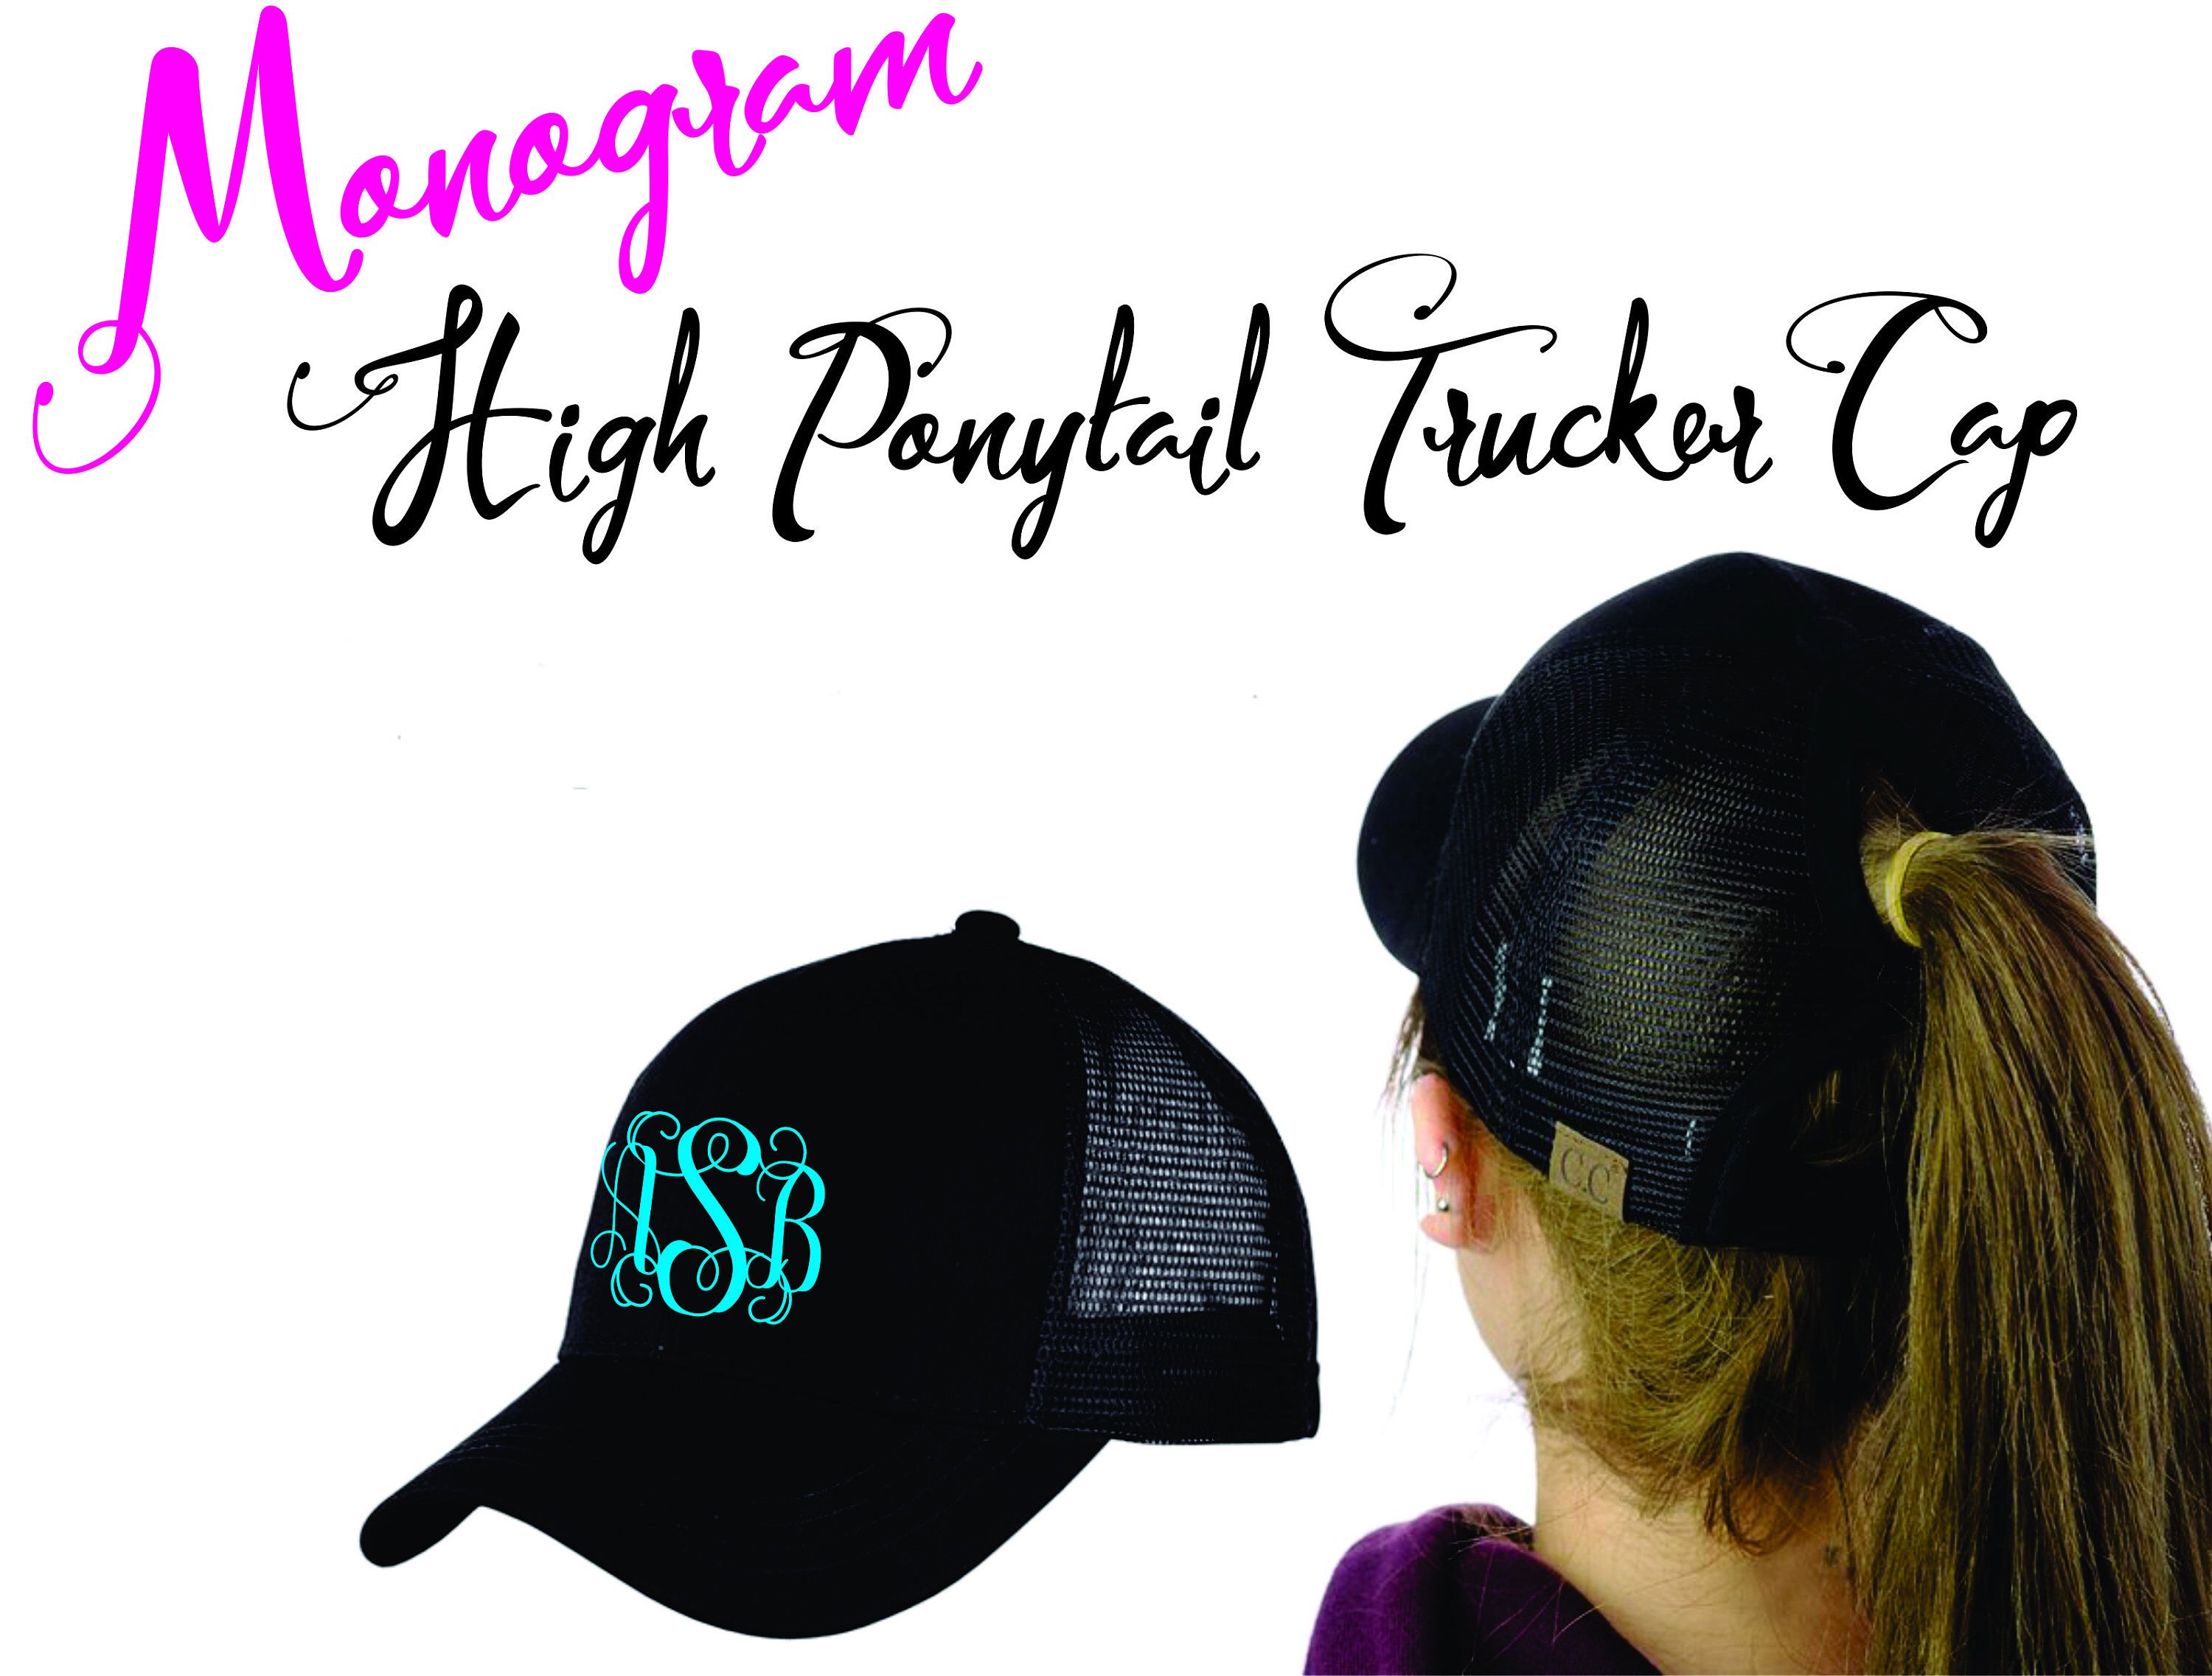 74381bf40a4 High Ponytails · Etsy Shop · Monogram · Cap · Baseball Hat · Monograms · A  personal favorite from my Etsy shop https   www.etsy.com